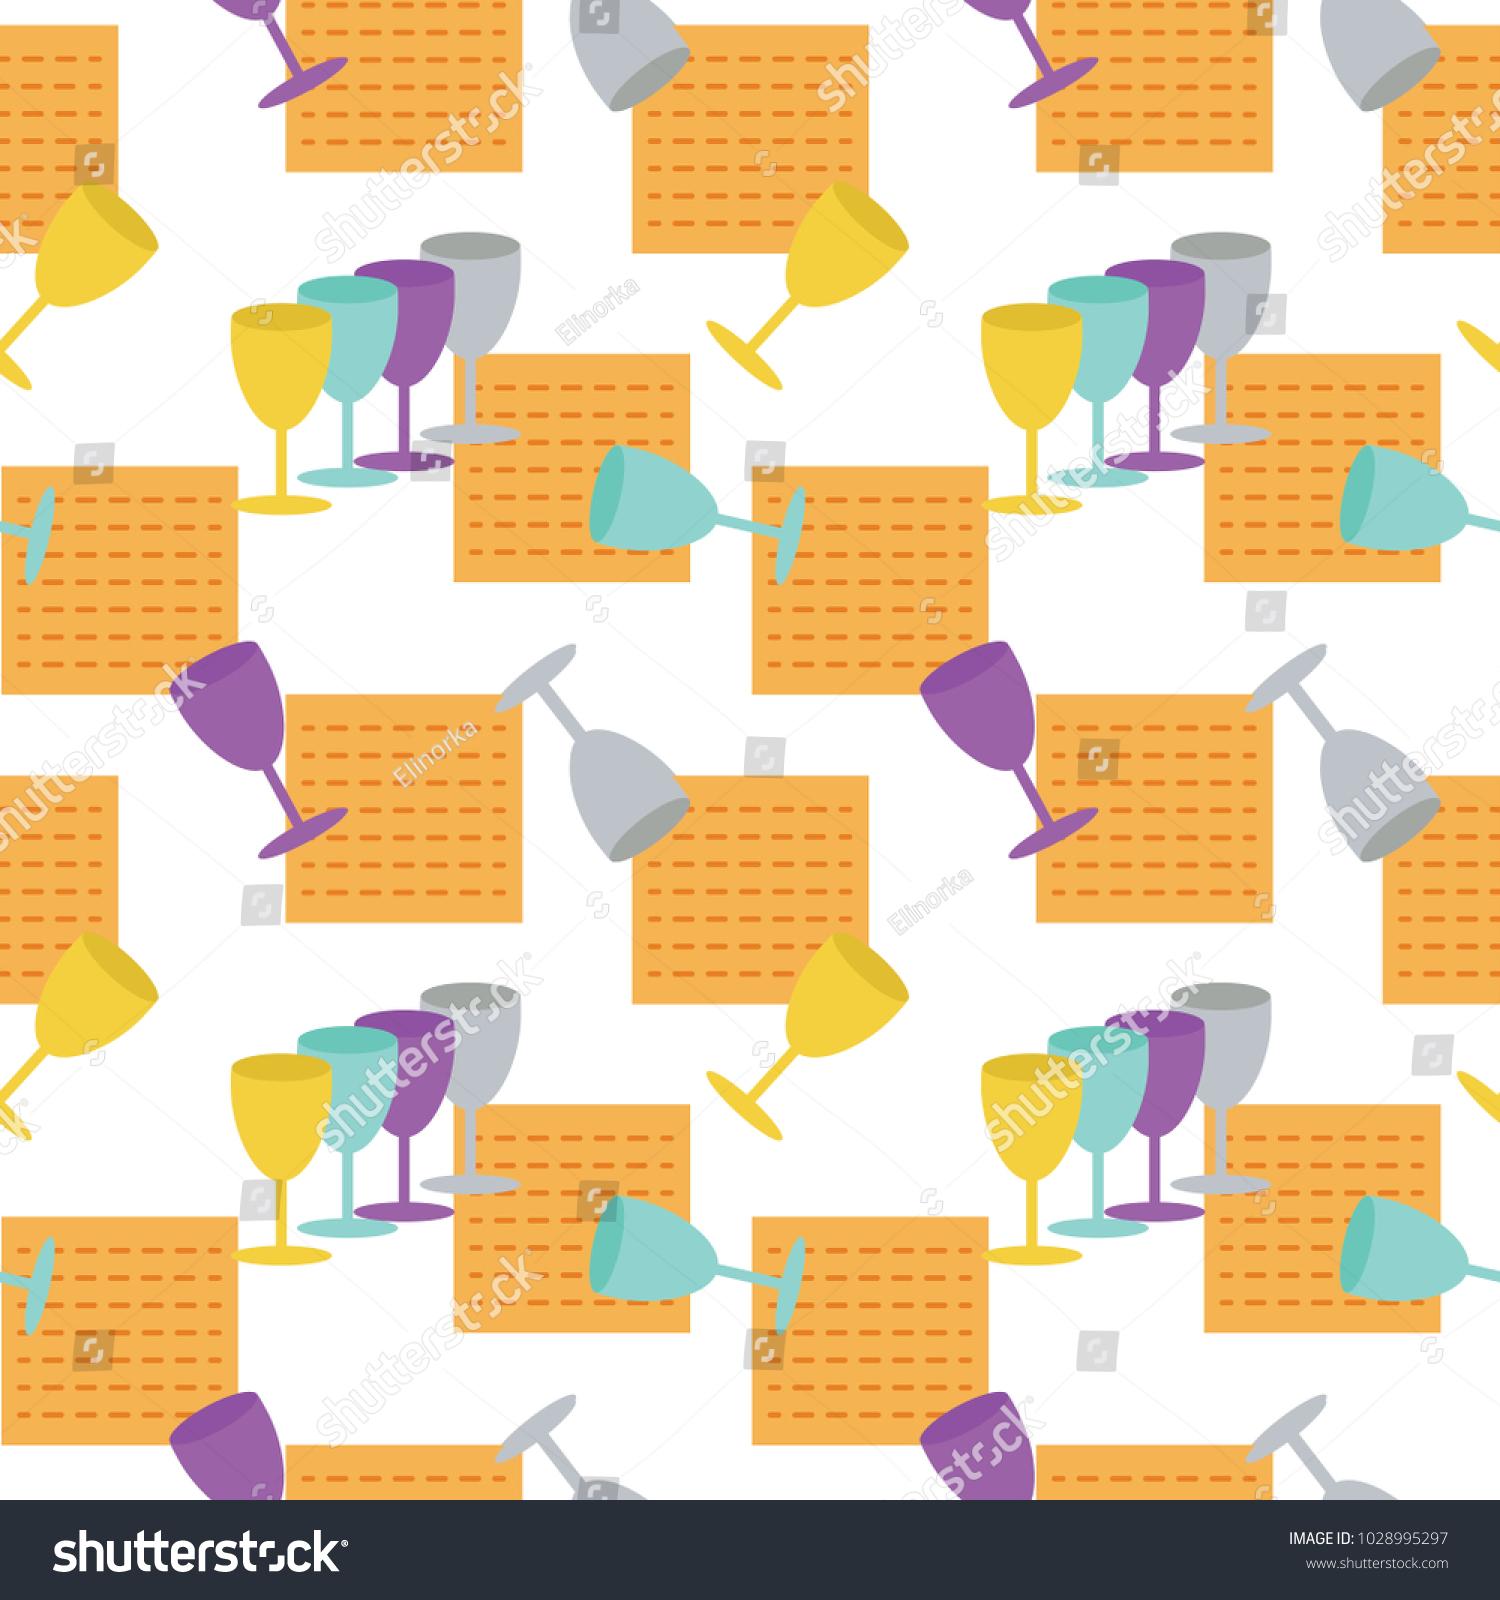 Passover Seamless Pattern Background Jewish Holiday Stock Vector